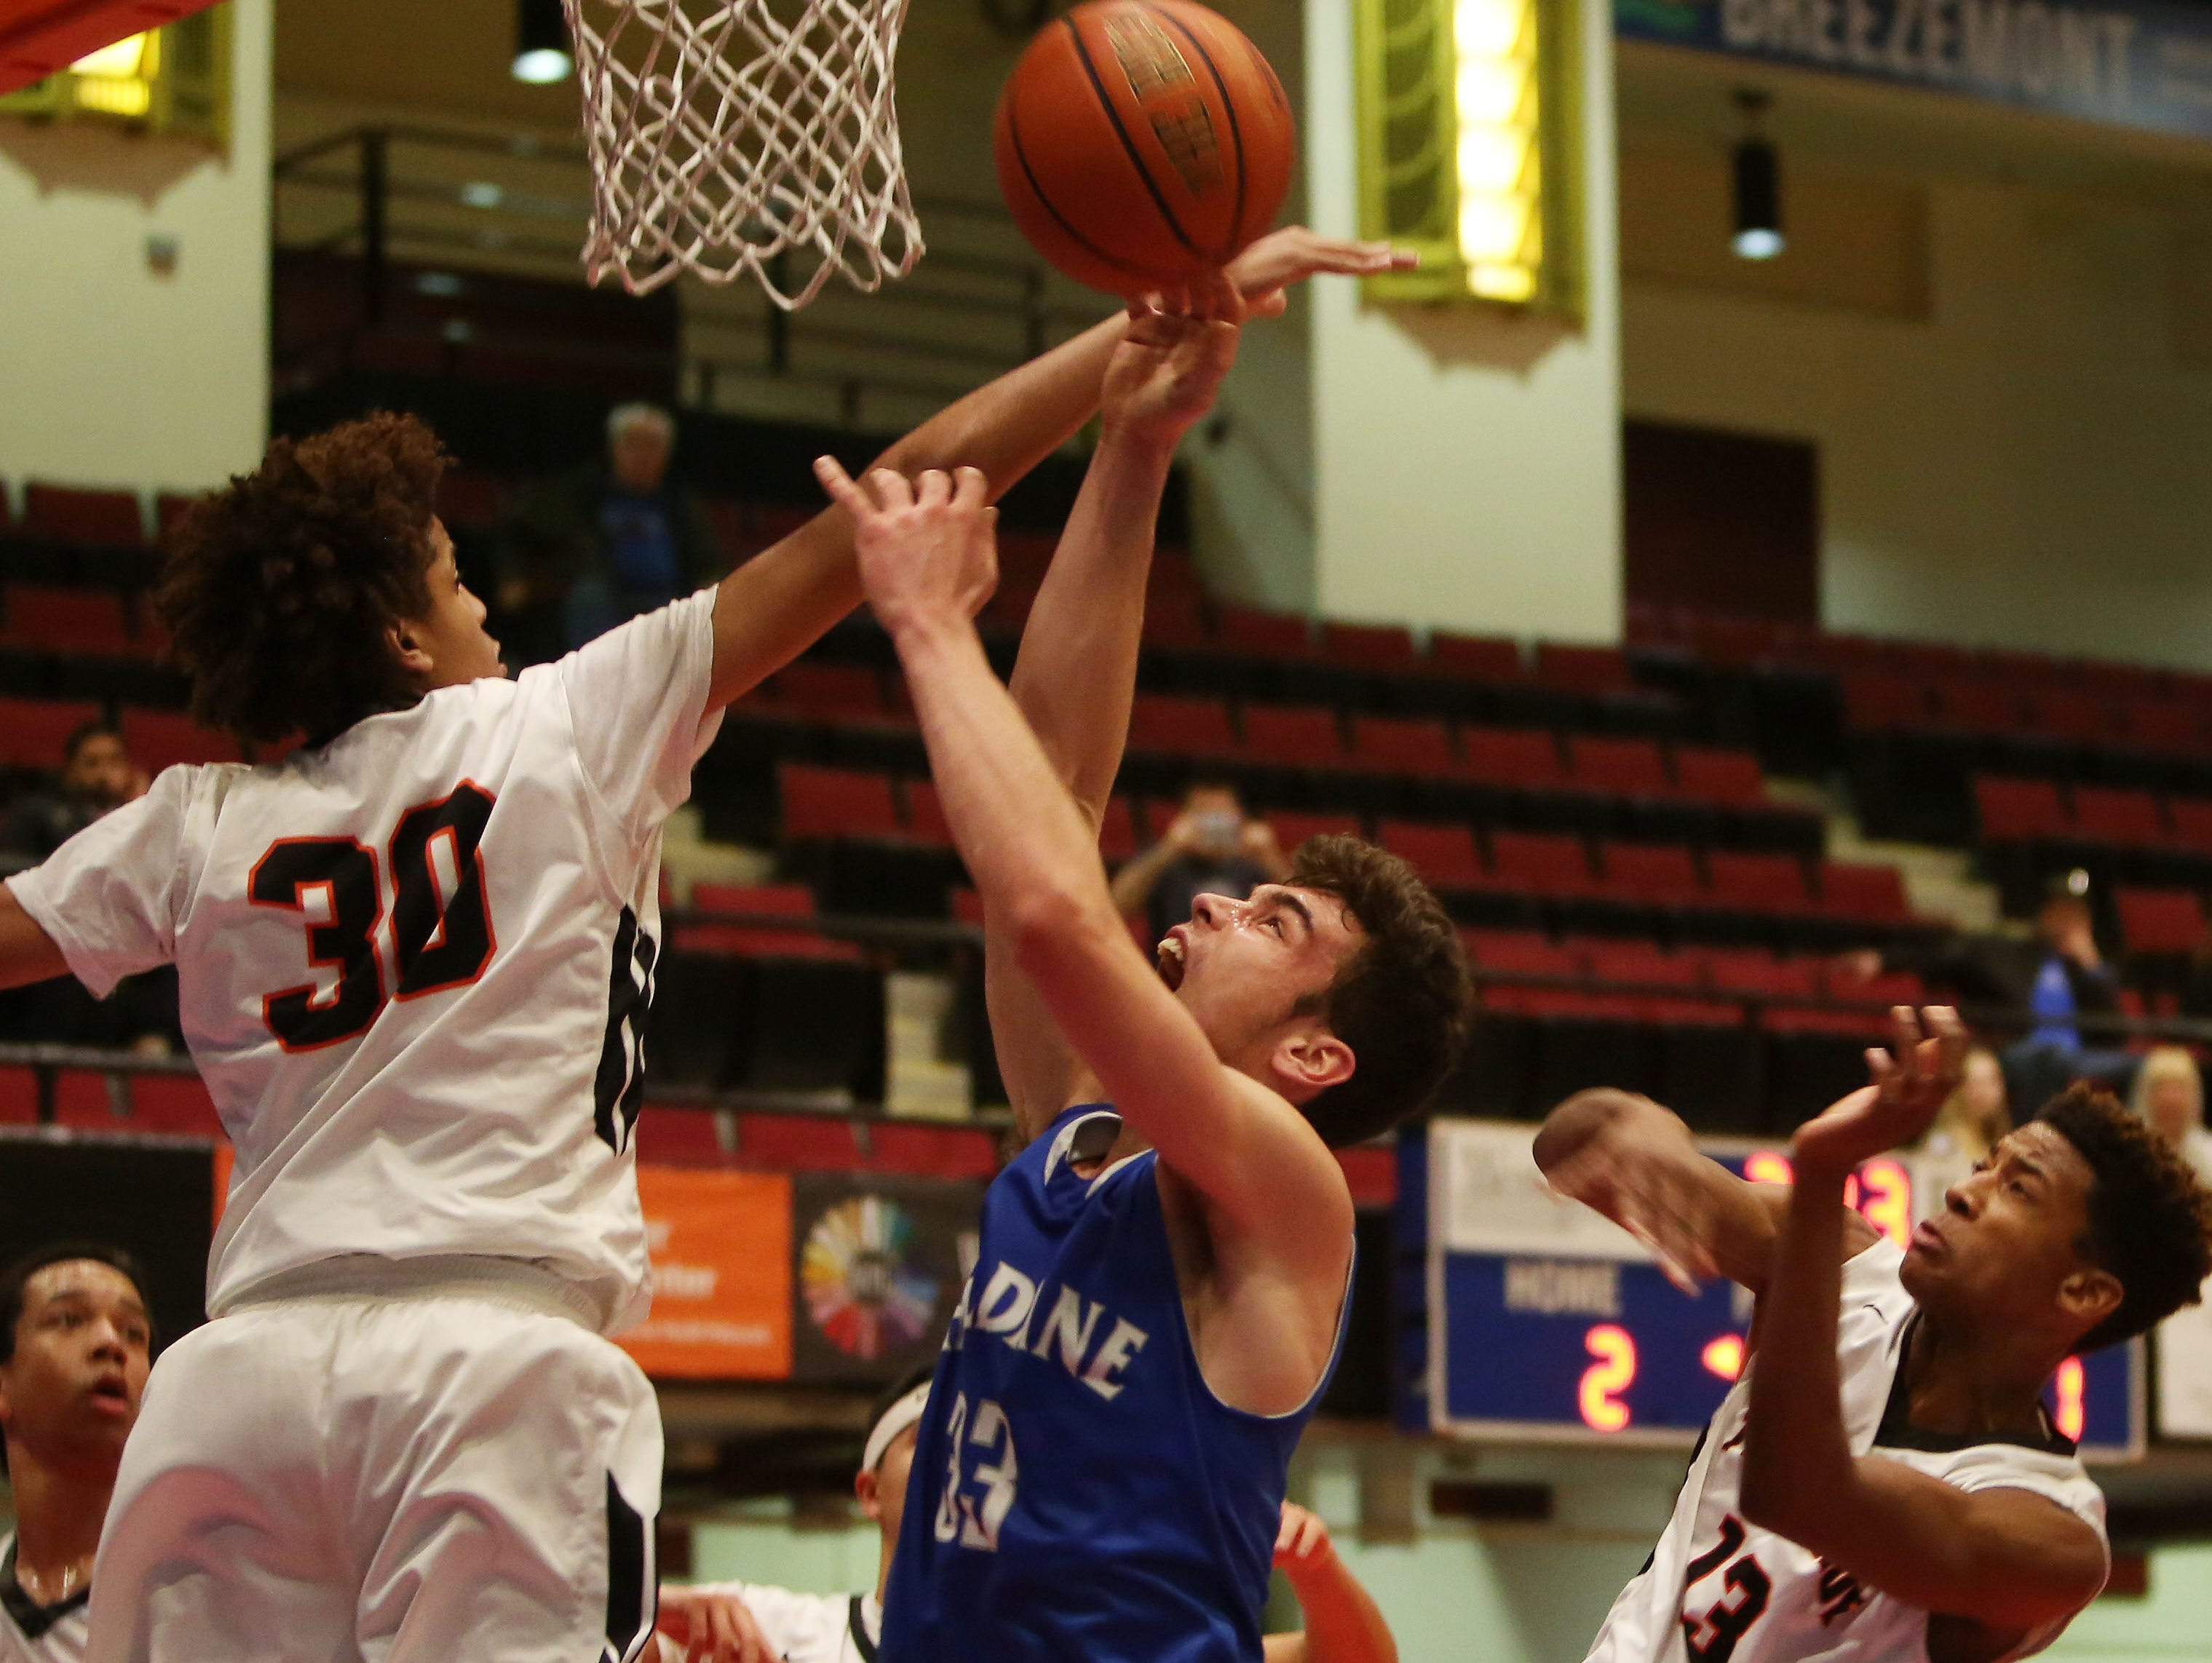 Haldane's Will Zuvic (33) is fouled by Tuckahoe's Bryan Murray (30) as he goes up for a shot during first half action in the boys Class C semifinal at the Westchester County Center in White Plains Feb. 24, 2016. Haldane won the game 44-34.